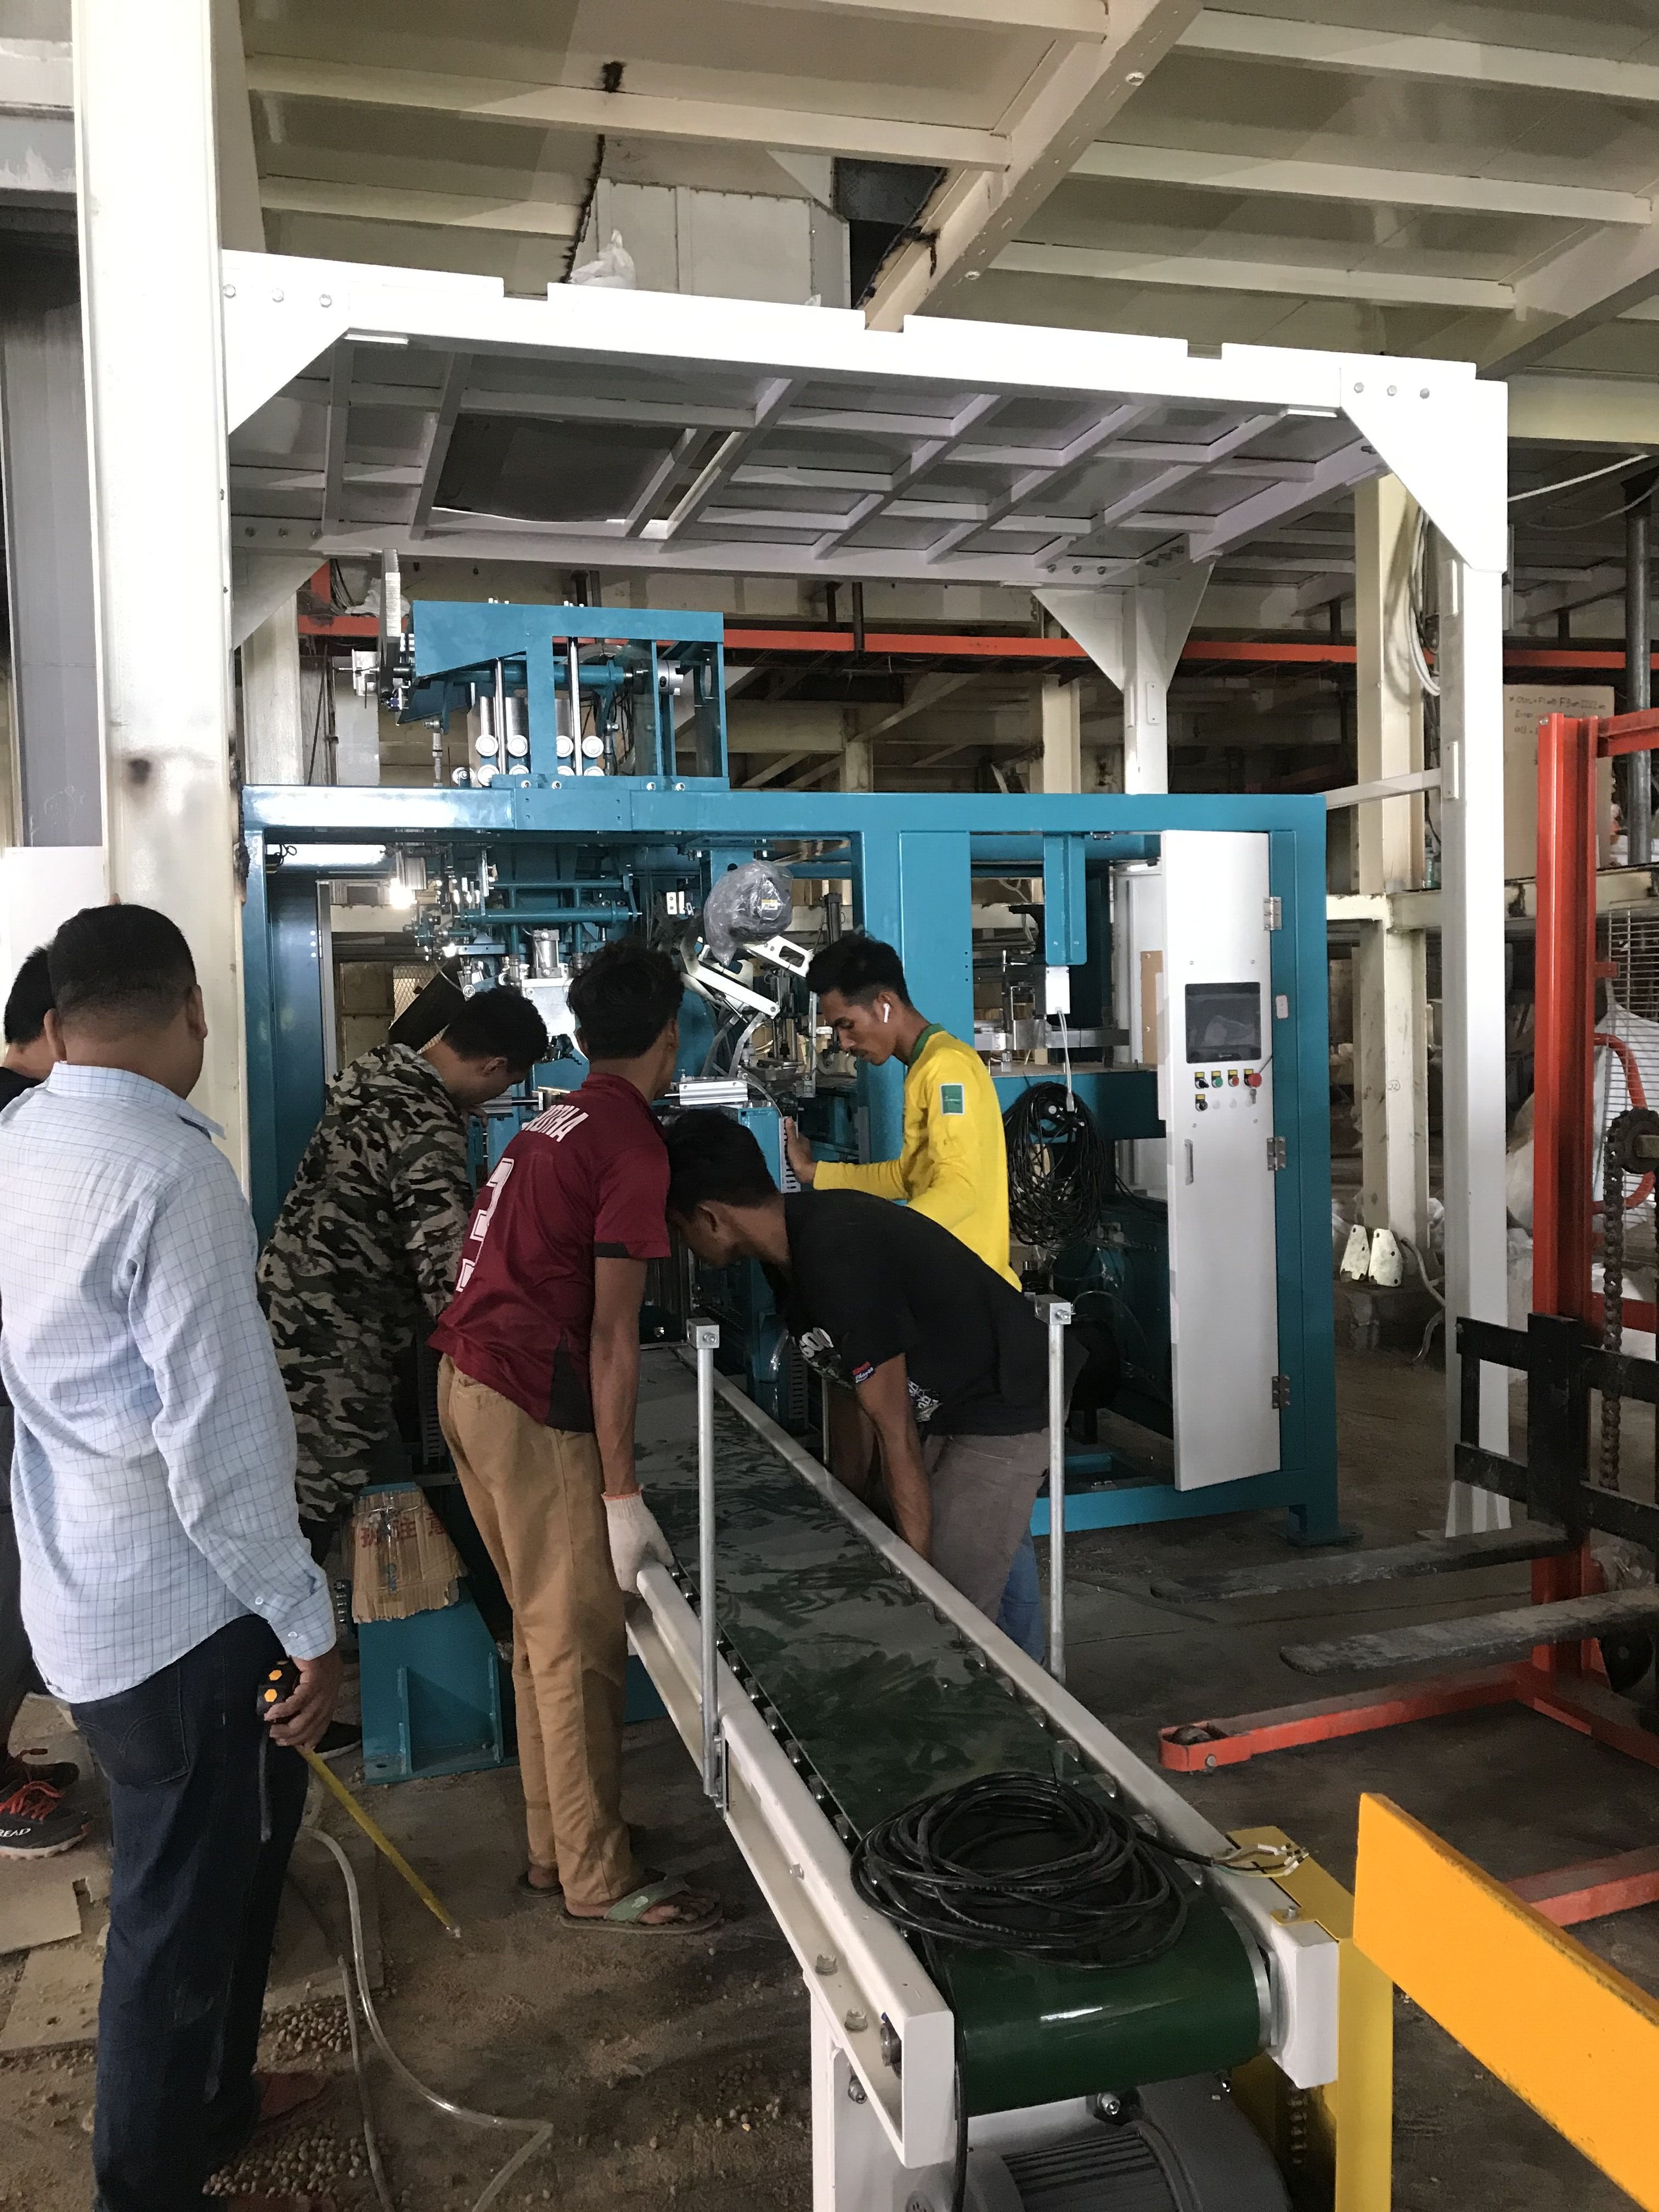 25kg granulated fertilizers Bagging machine fully automated packing line for Bagging system fully automated packing line Textured Protein Bagging Machine Packing Machine bagging palletizing system